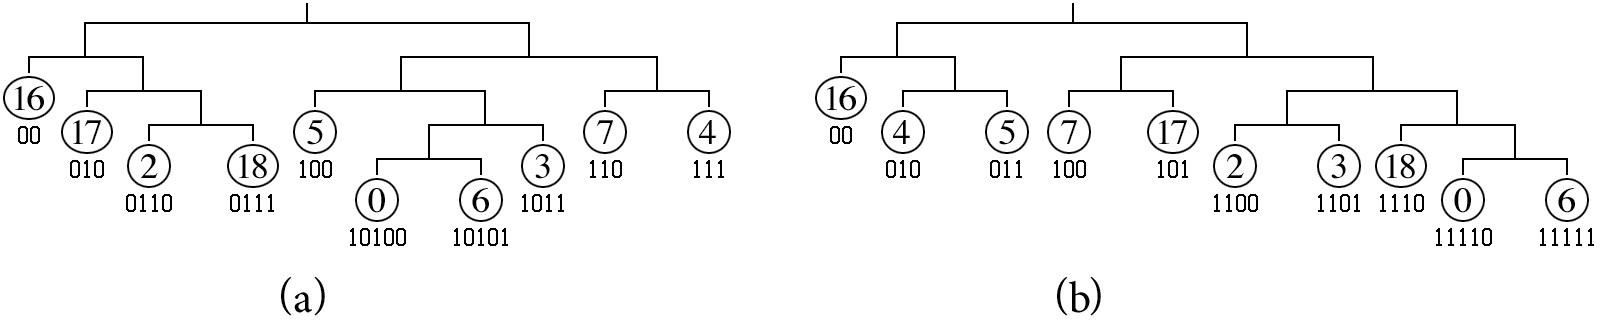 Two Huffman Trees for Code Lengths